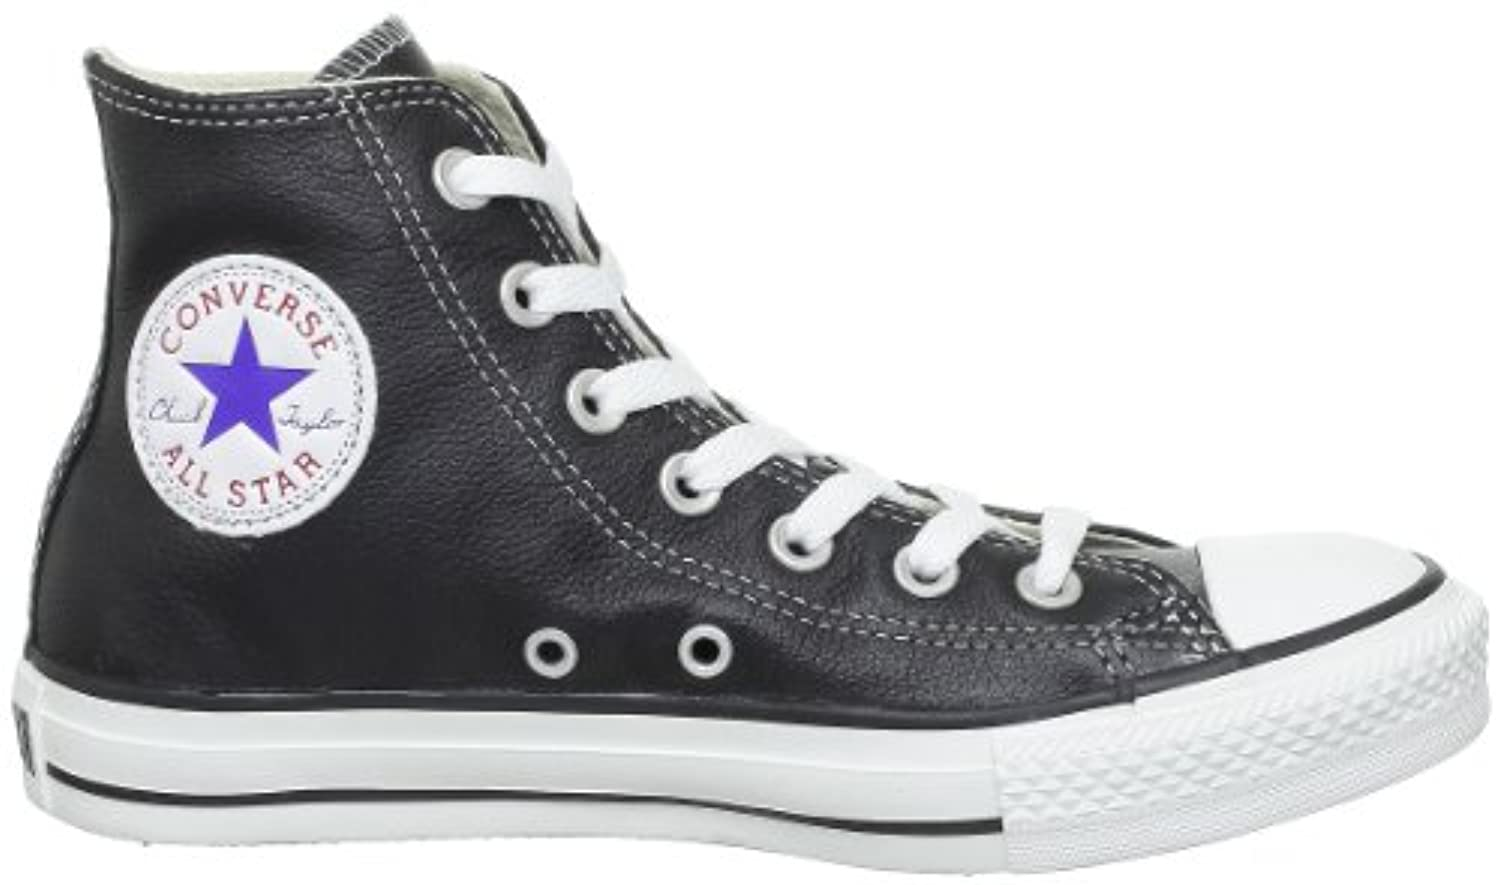 Converse  Ct Core Lea Hi Unisex-Adult Trainers  Black BLACK Size: UK 03